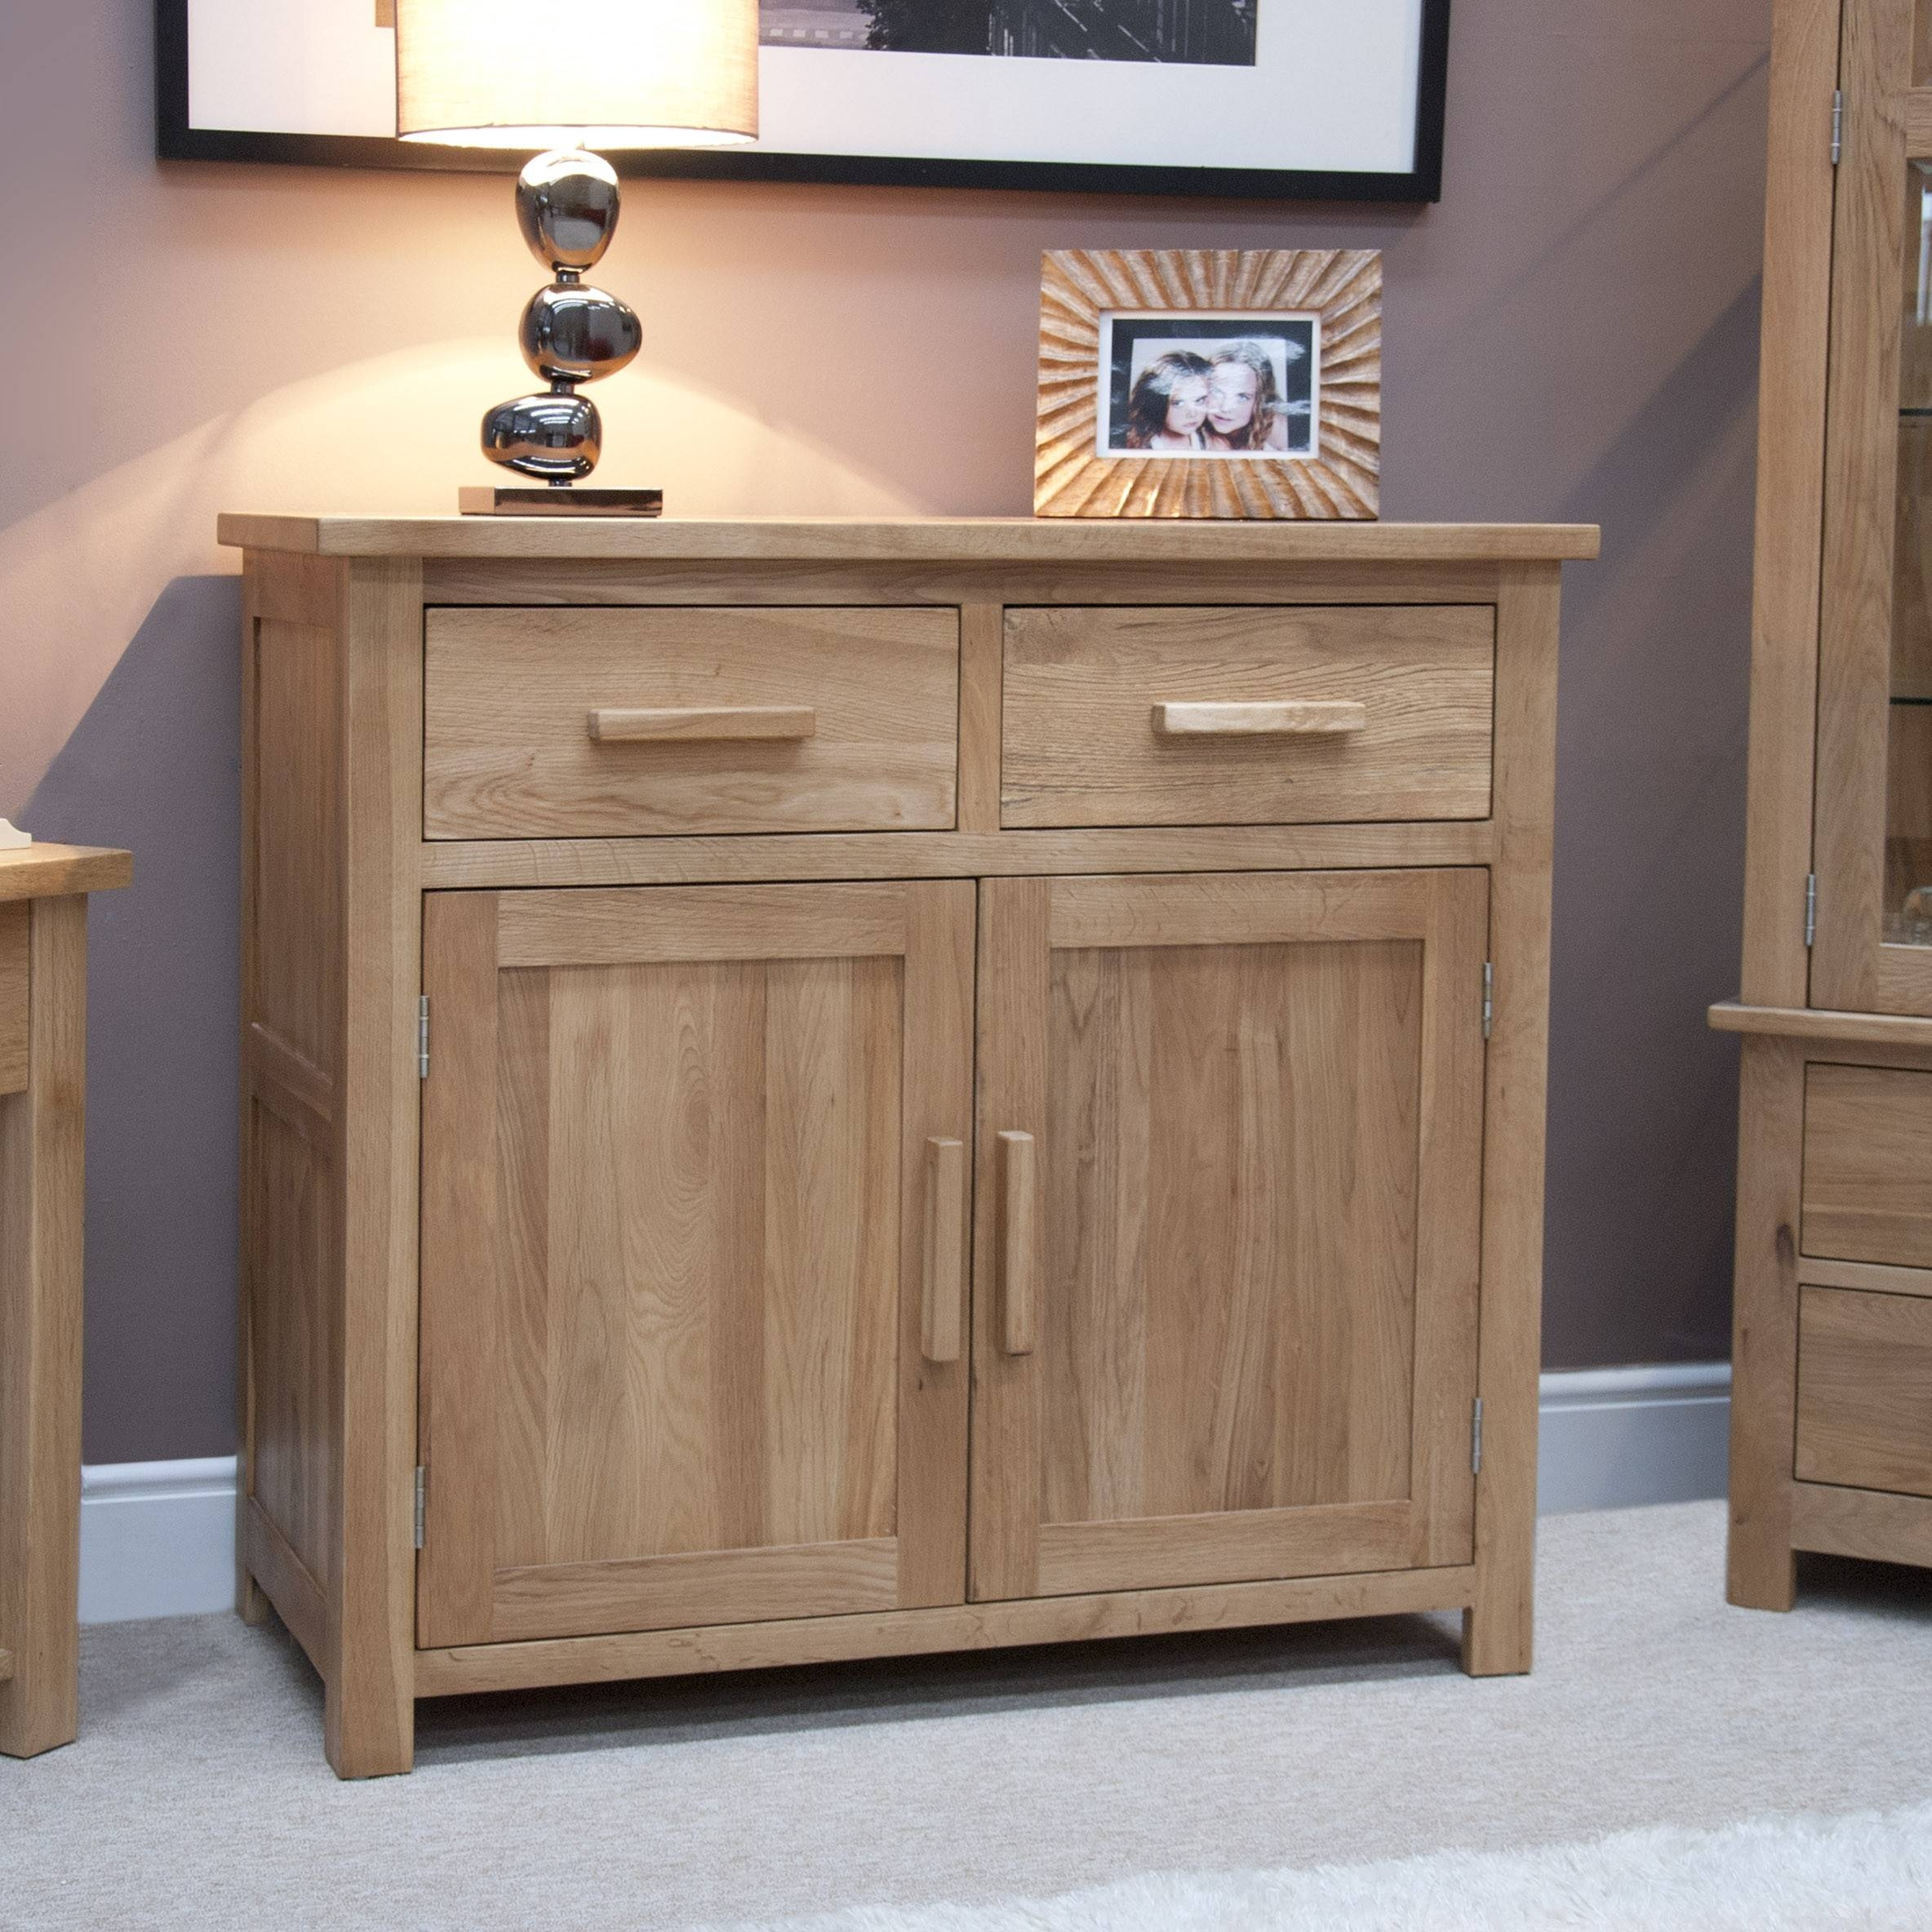 Opus Oak Furniture Small Sideboard | Furniture4Yourhome In Oak Sideboards For Sale (View 12 of 30)